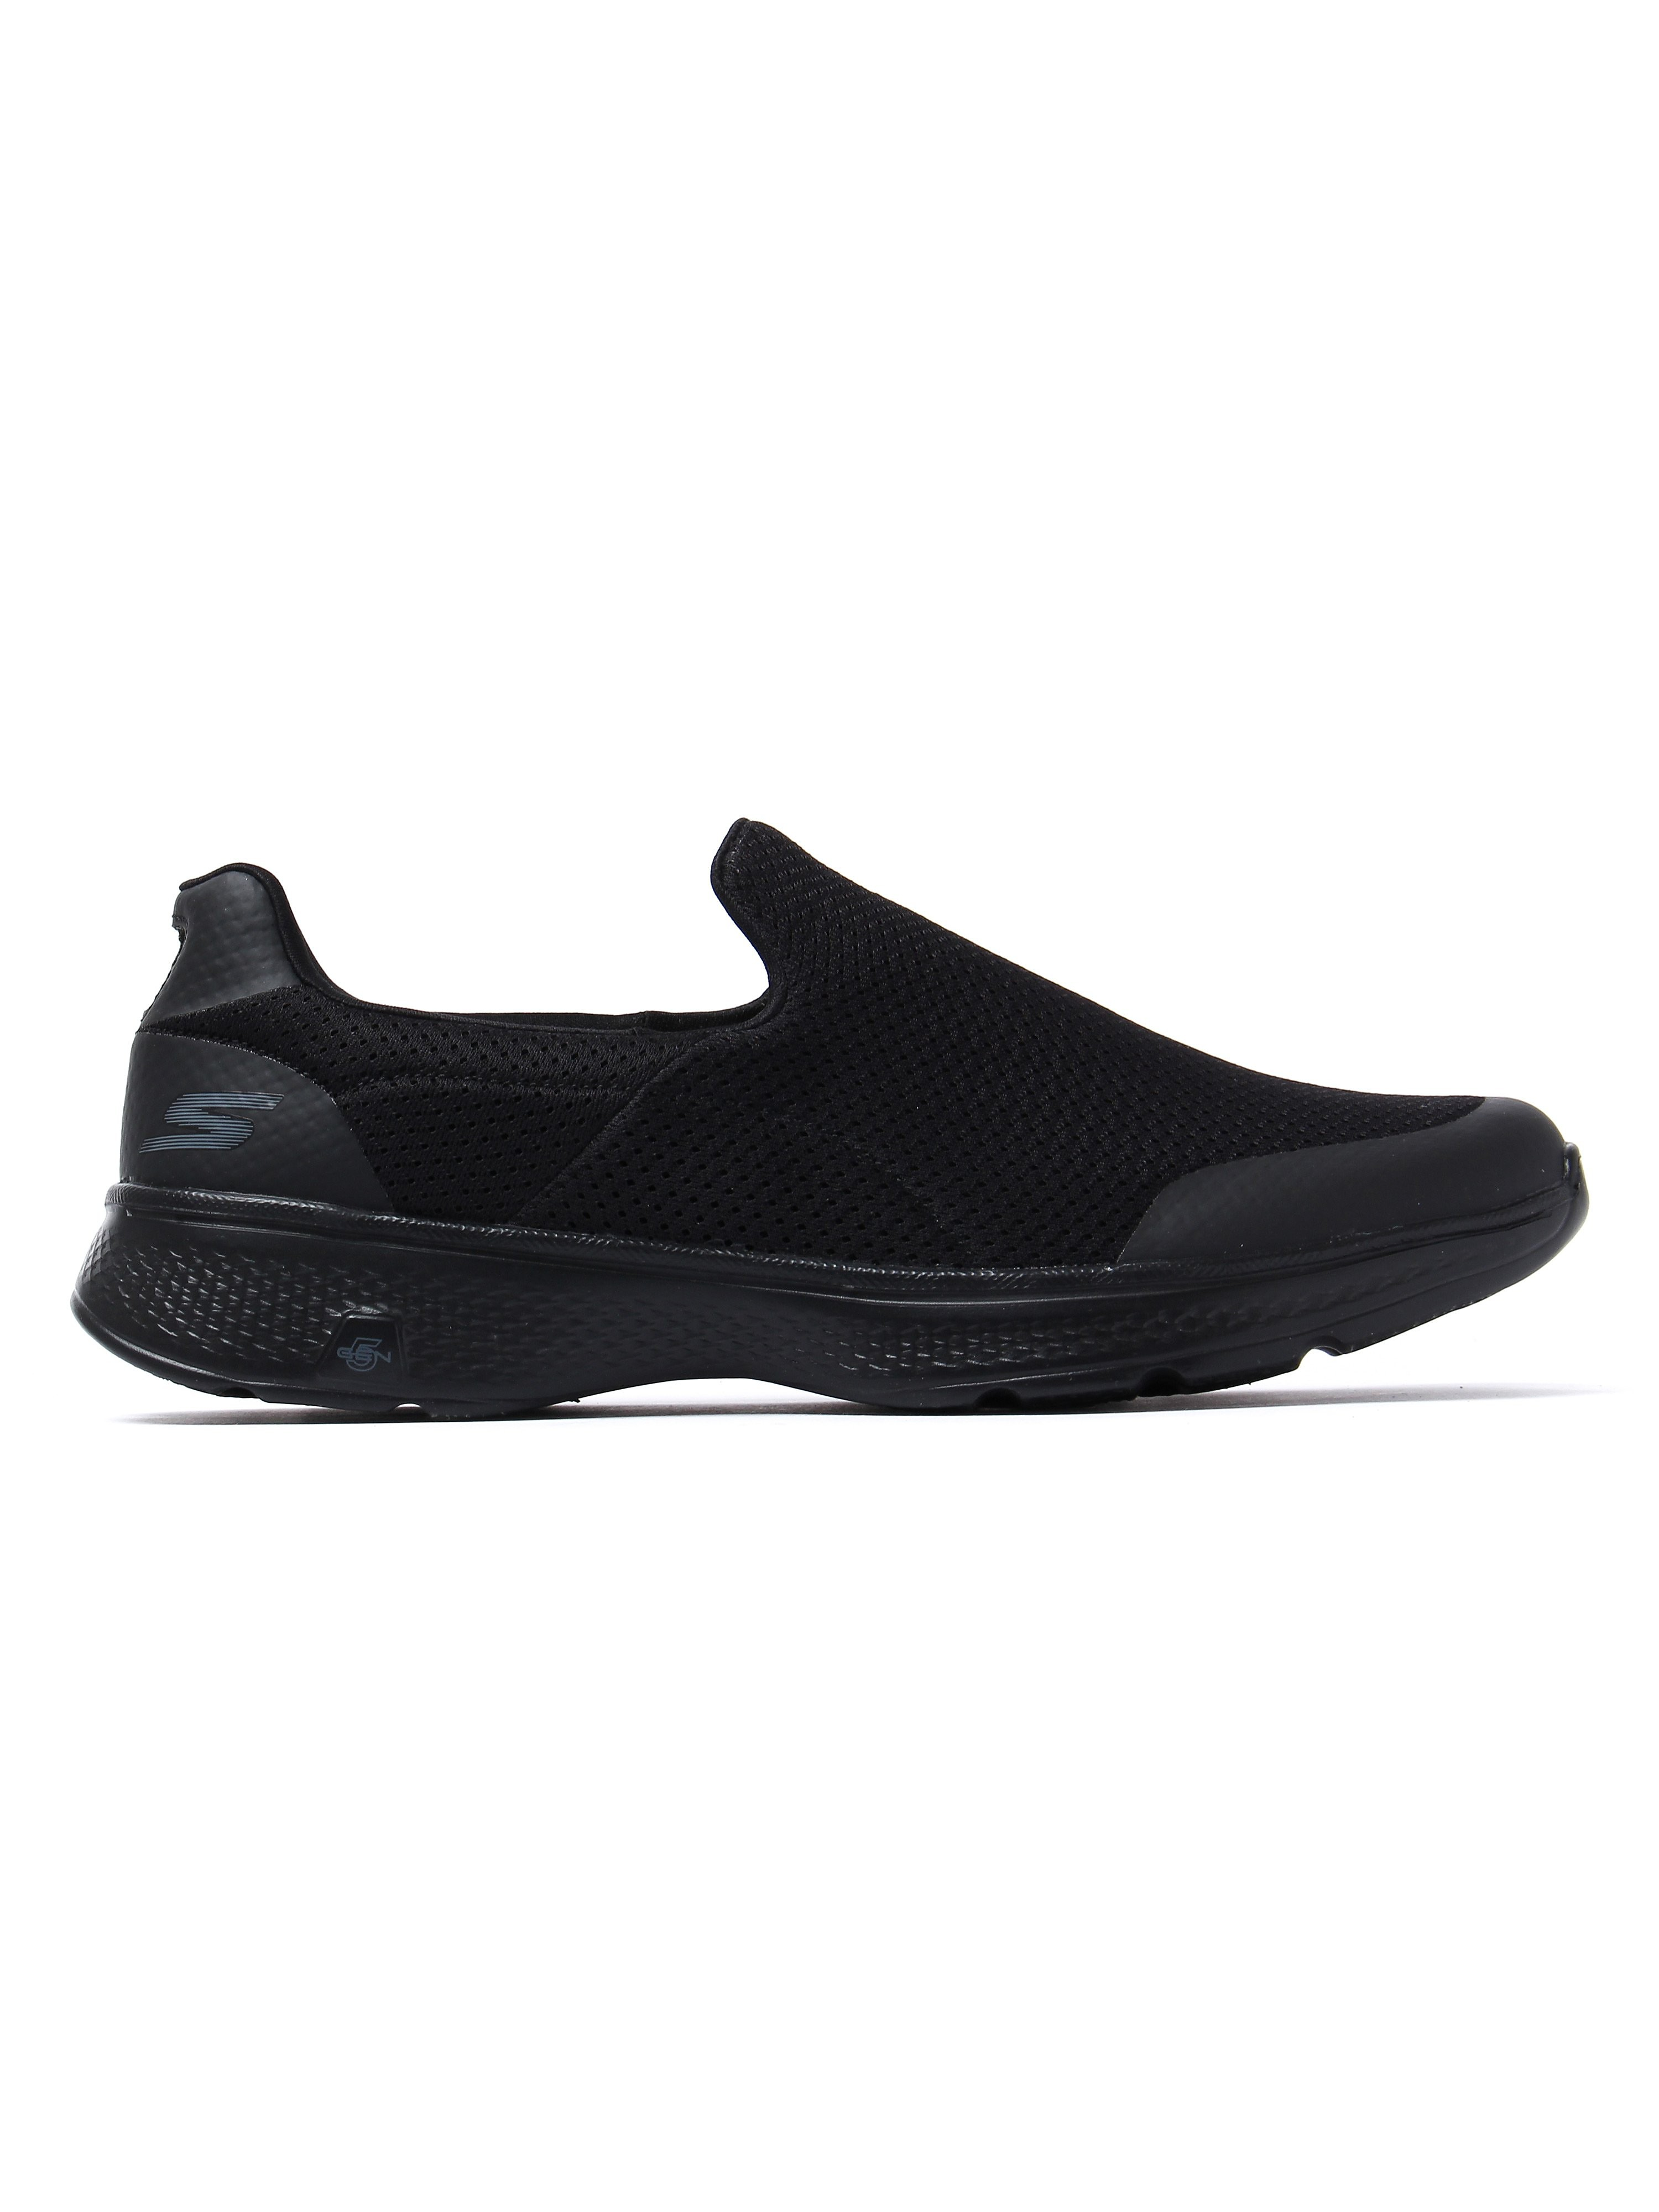 Skechers Skechers Men's Go Walk 4 Incredible Trainers - Black